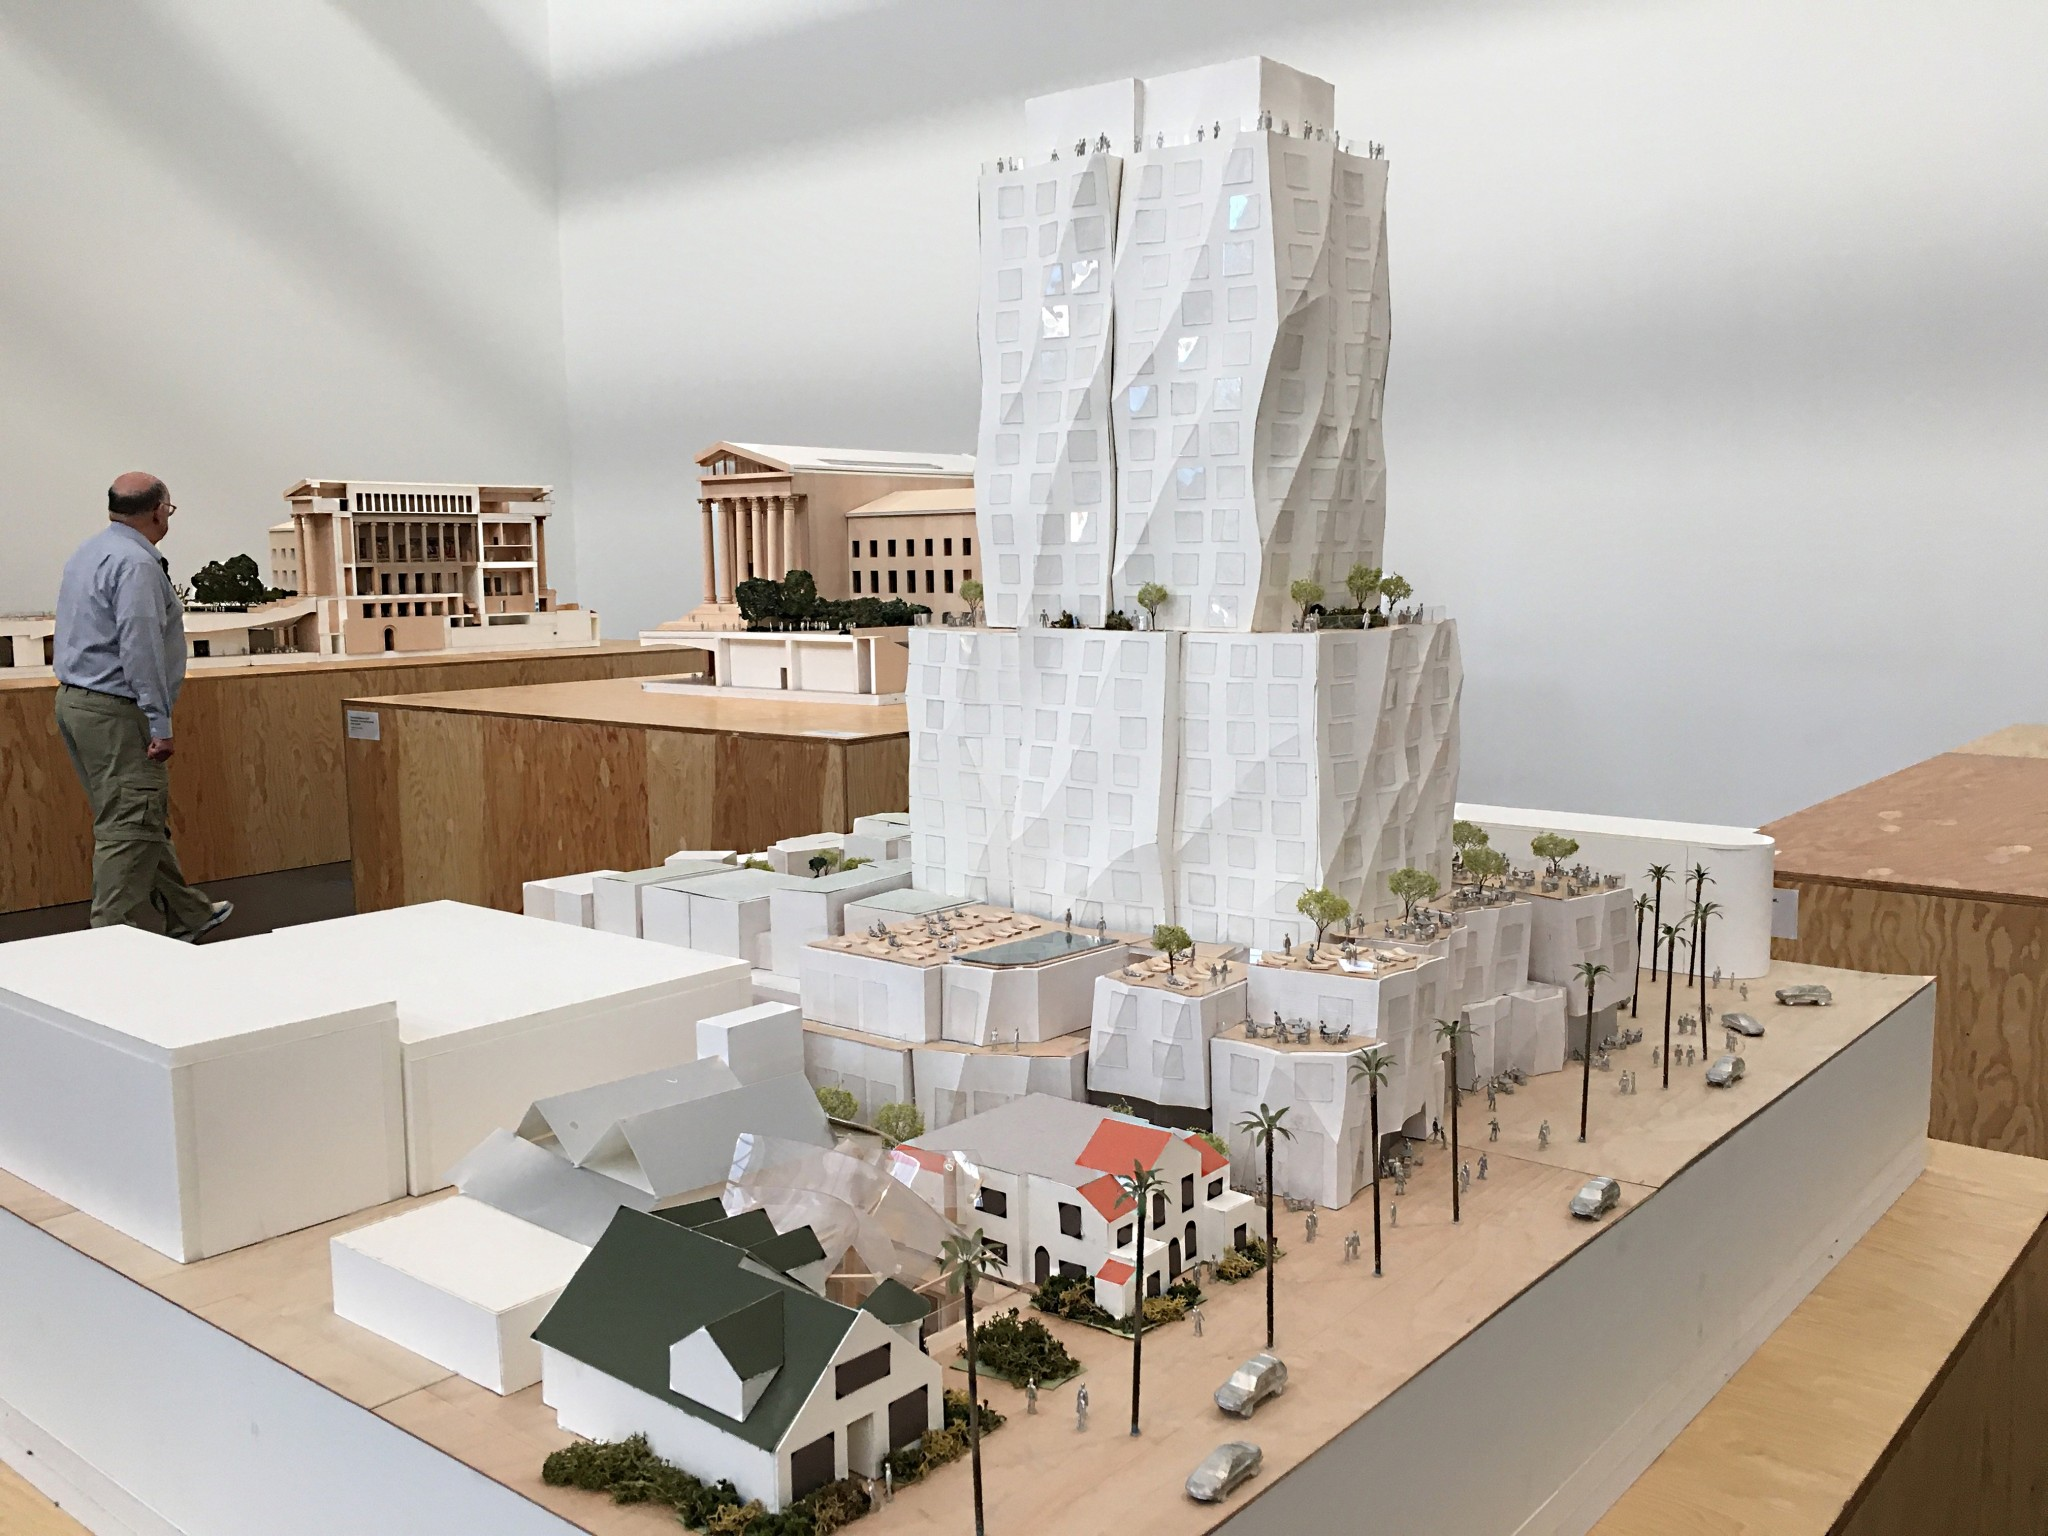 Model of the Ocean Avenue Project, designed by Frank Gehry. This was one of four dense, tall projects that helped fuel Measure LV. A Gehry-designed mixed-use, high-rise project on Sunset Boulevard was approved after modifications by the designer and developer.